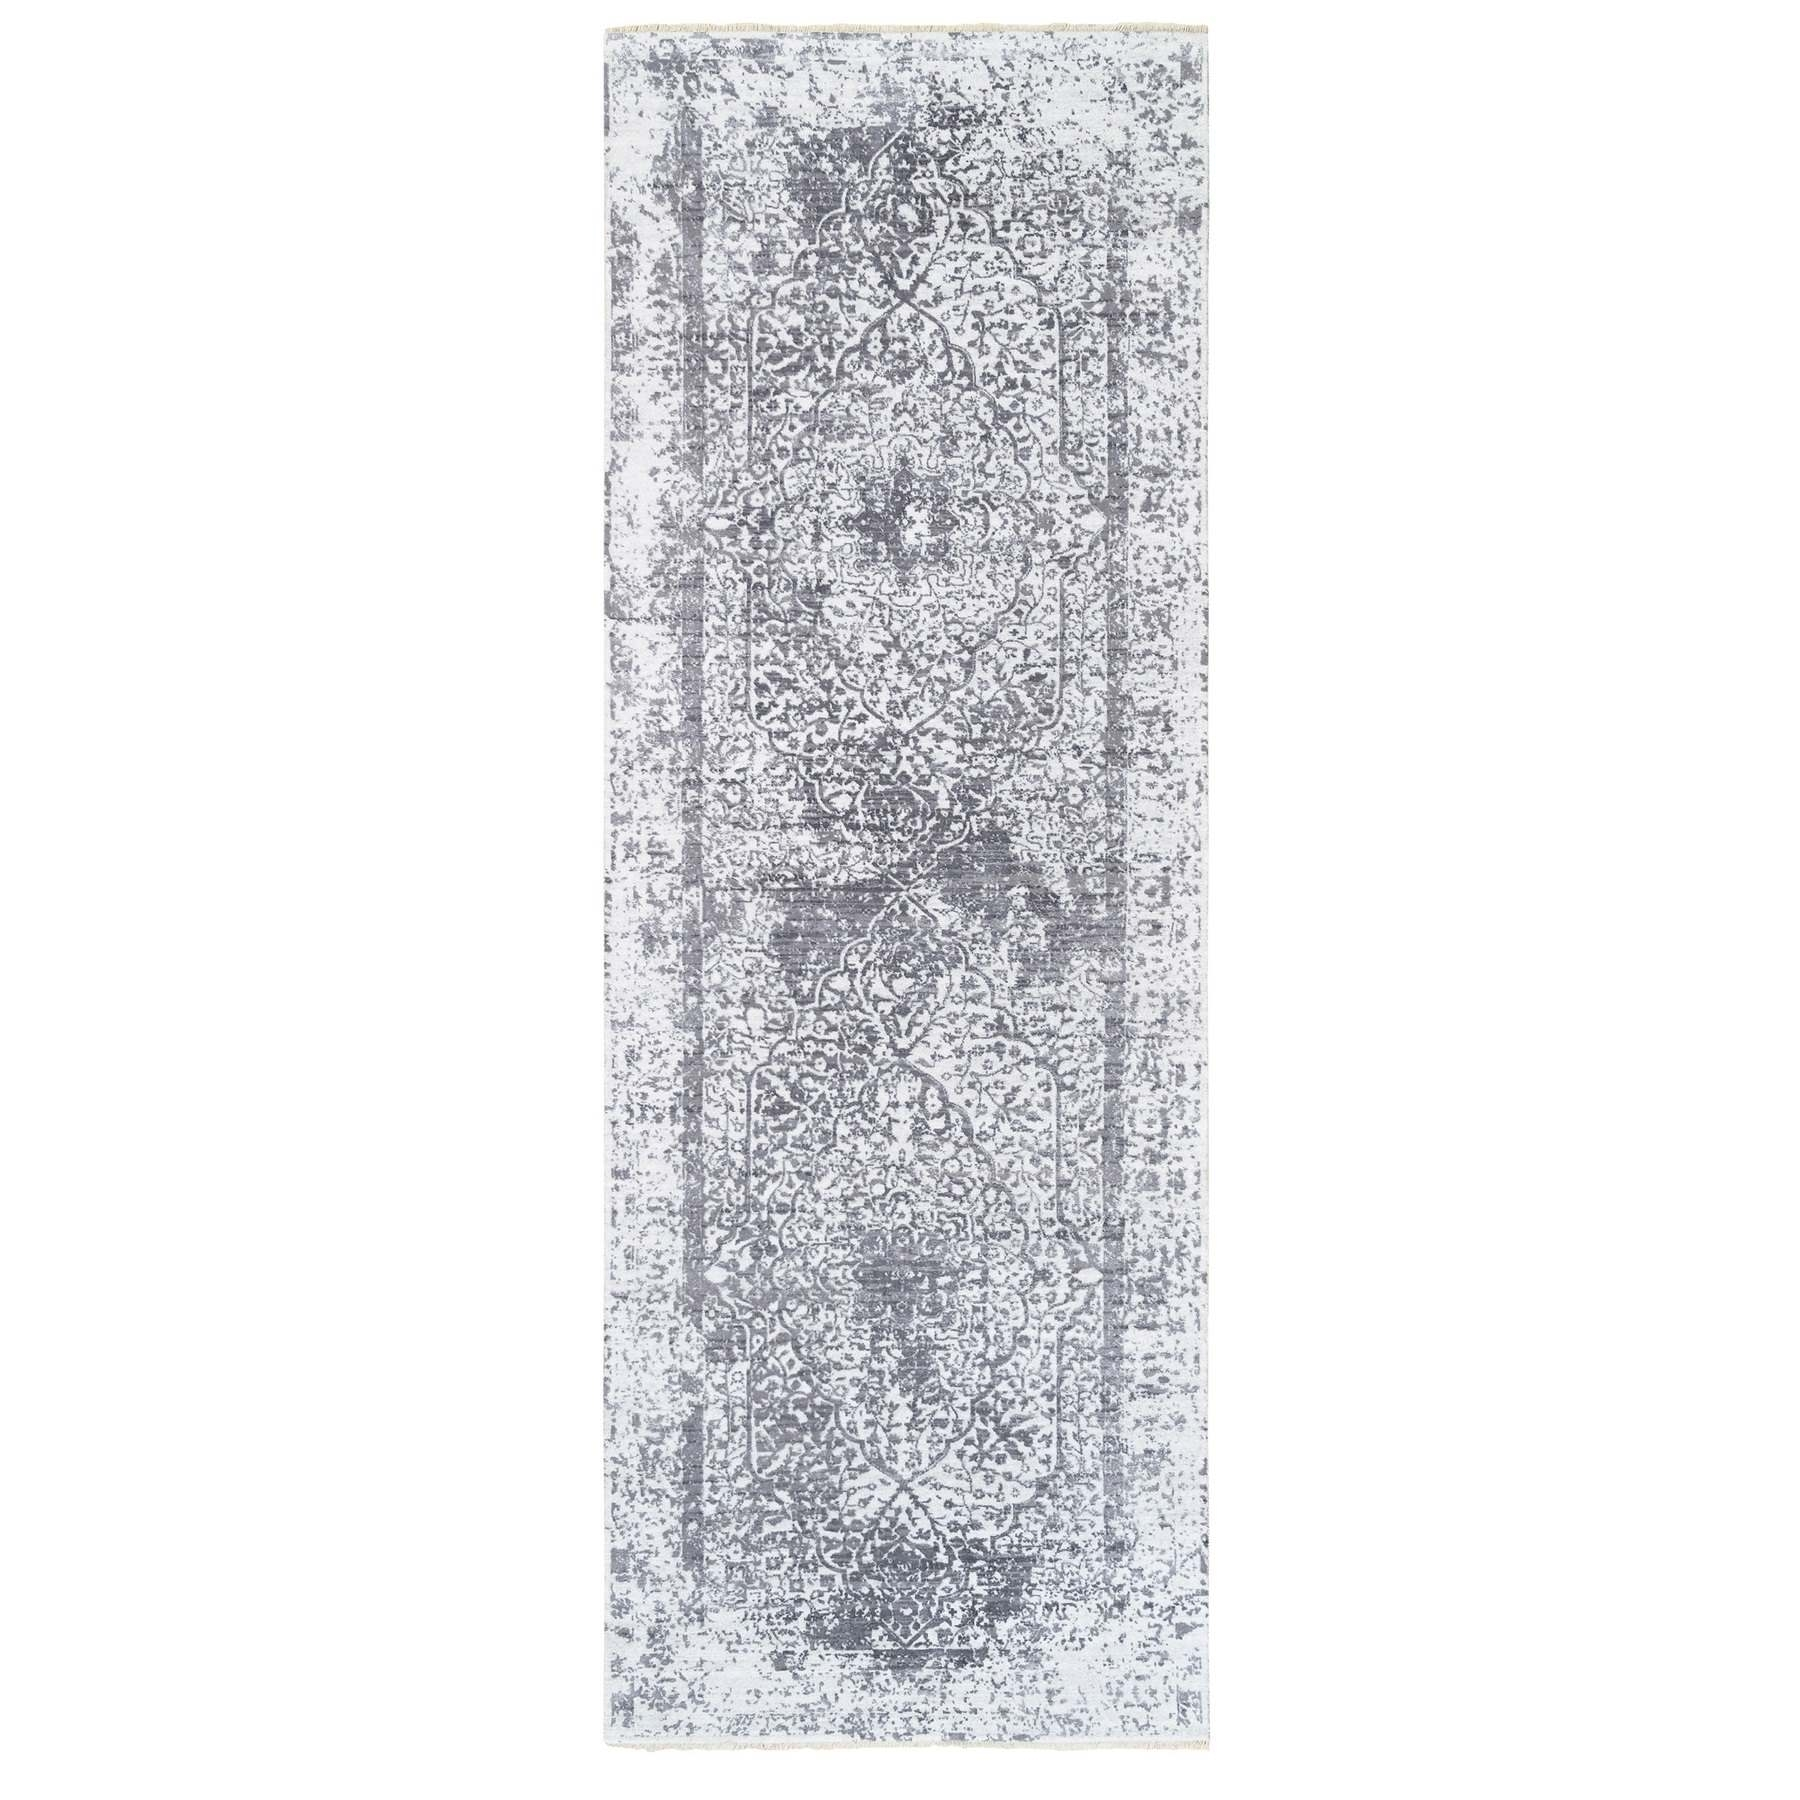 Transitional Rugs LUV561303